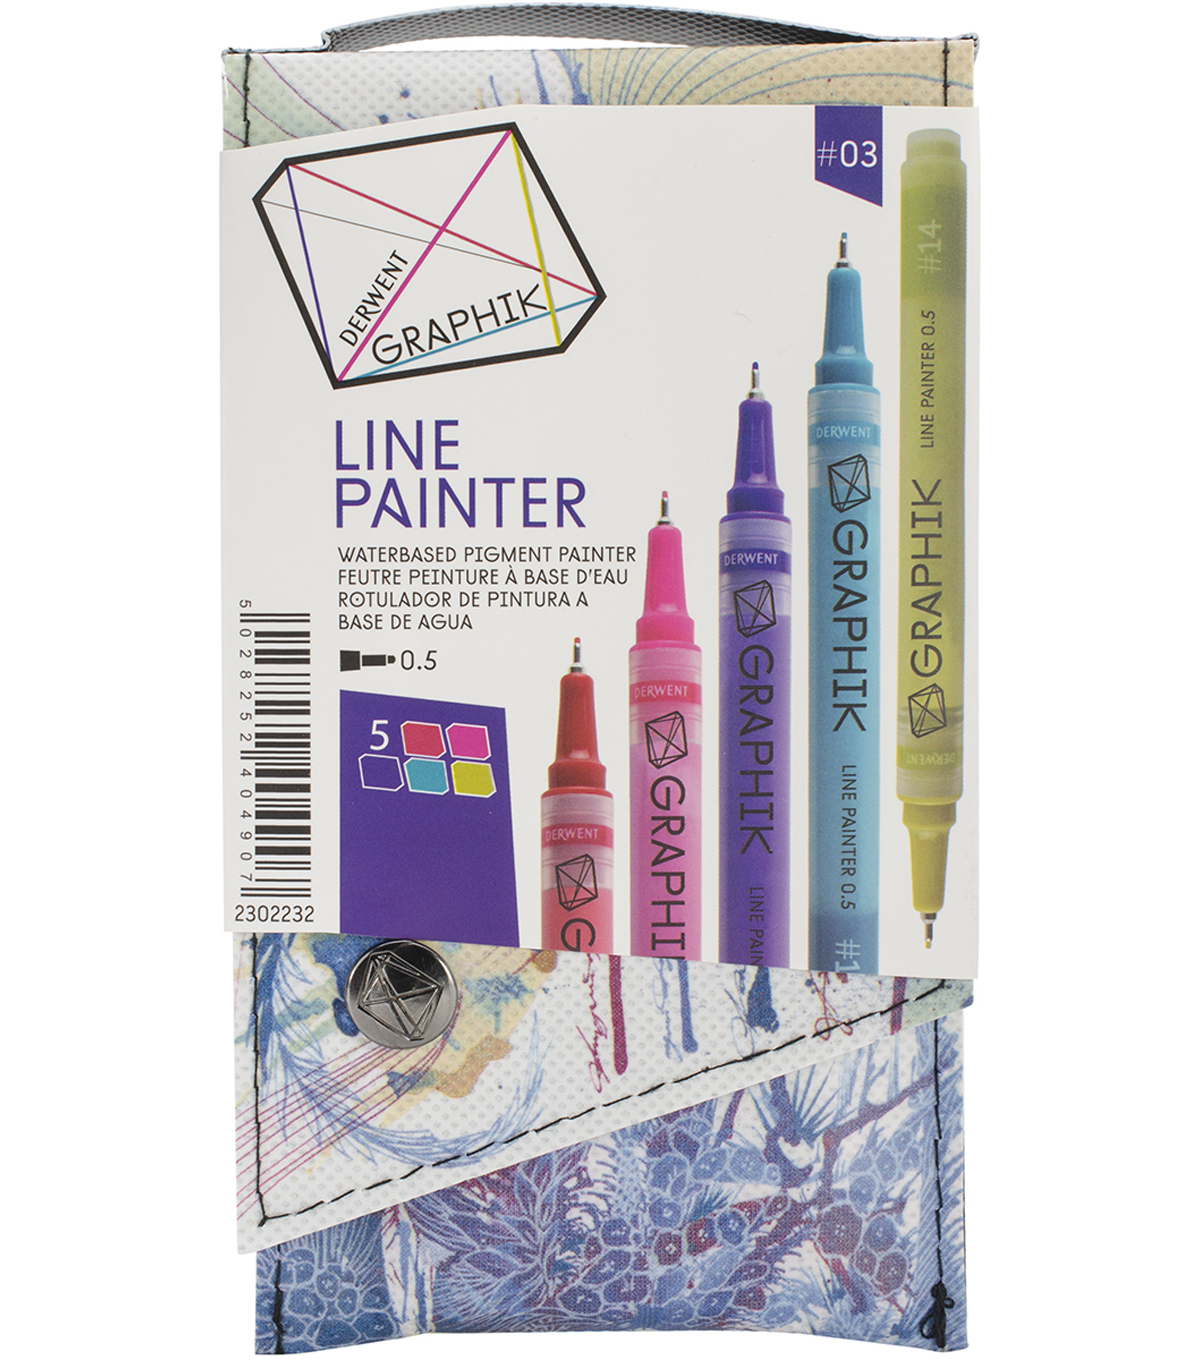 Derwent Graphik Line Palette #4 Painter Set